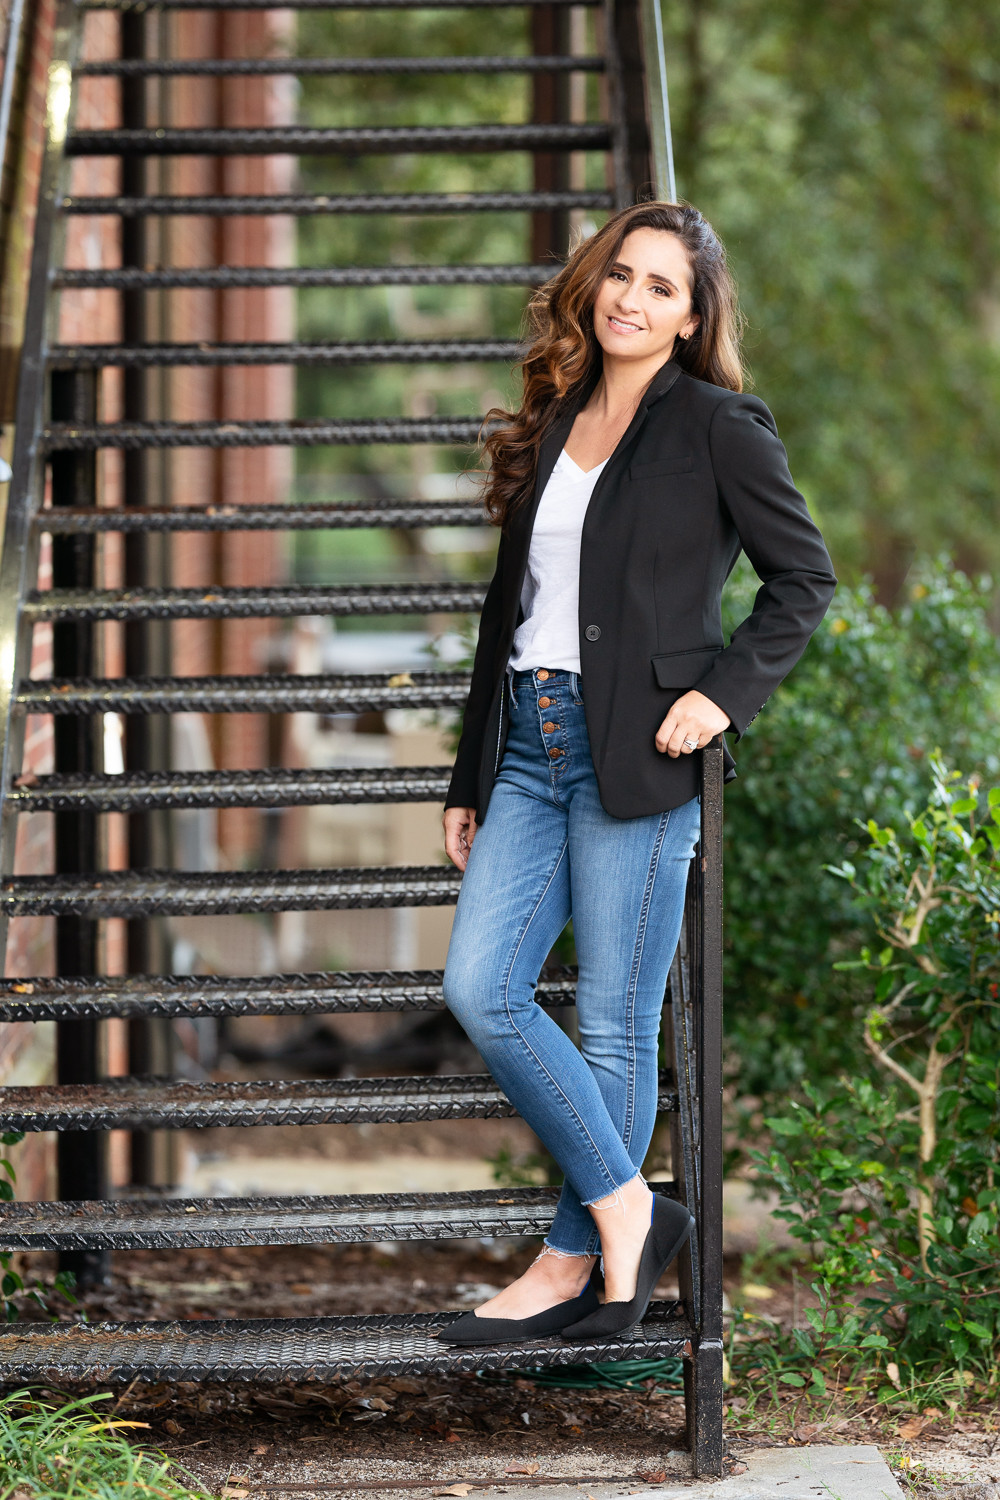 Southern Pines realtor headshot makana photography downtown leaning poses stairs